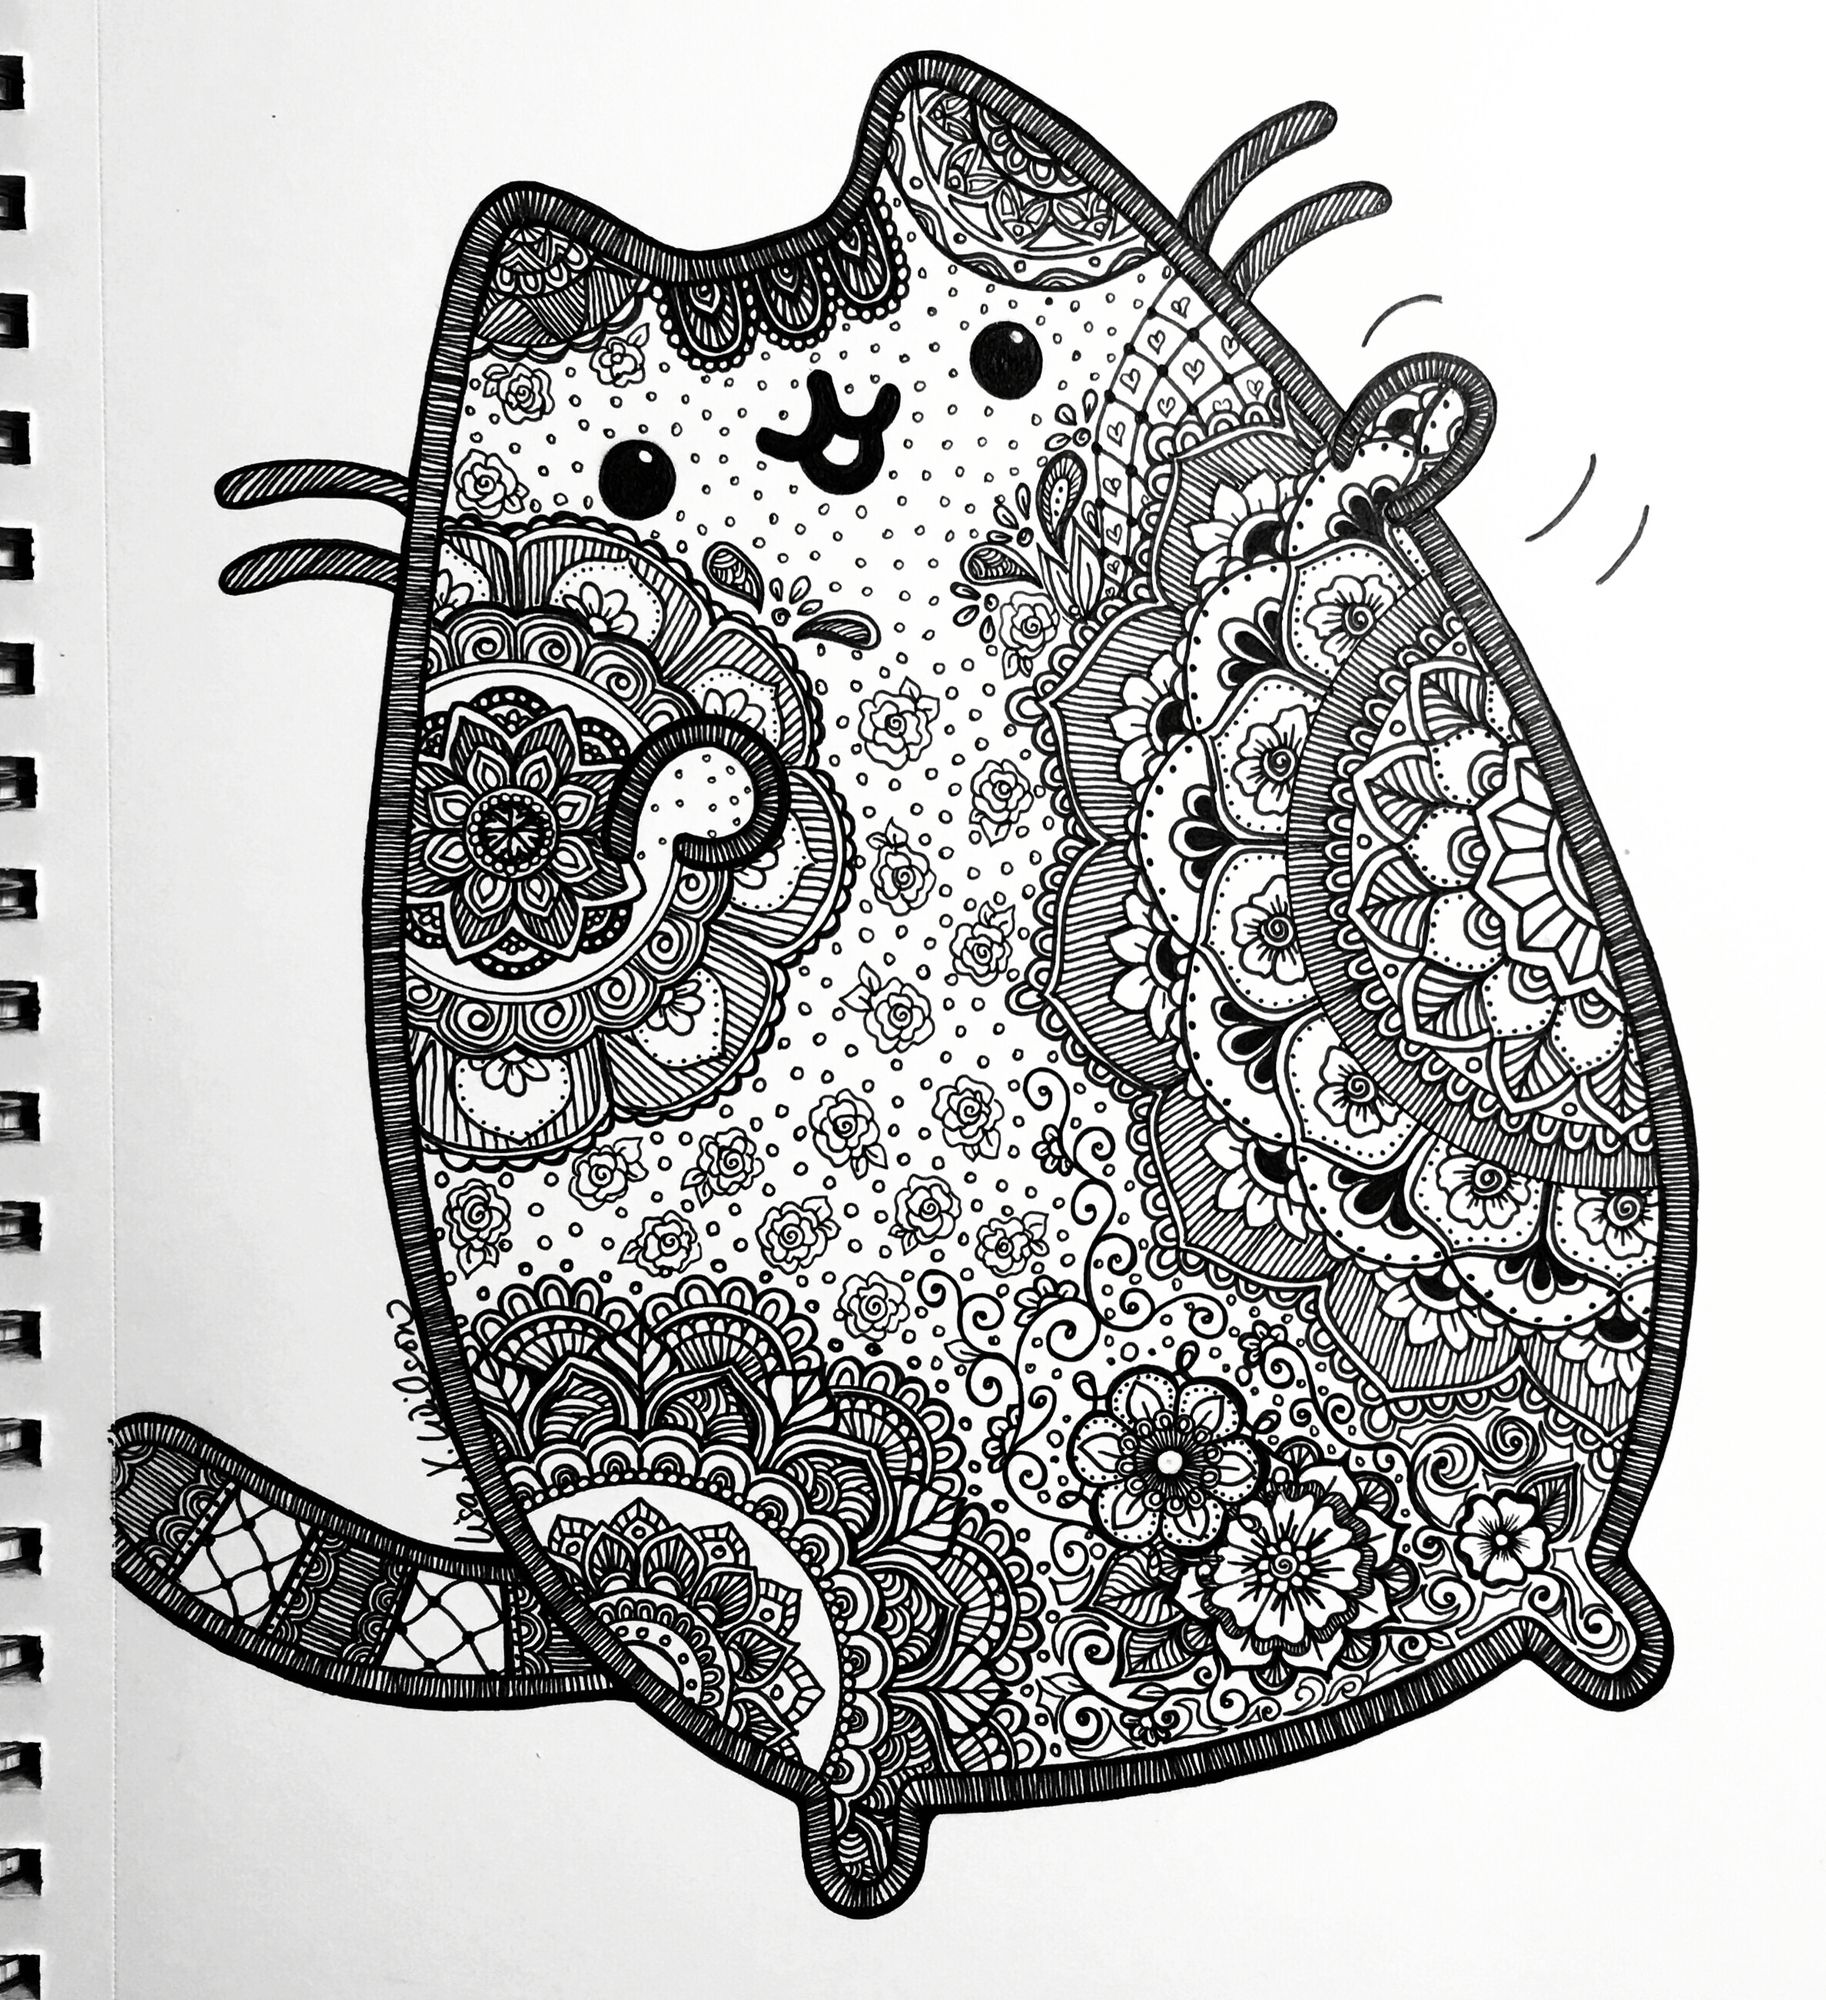 Pusheen inspired zentangle and mandalas | Arte | Pinterest ...